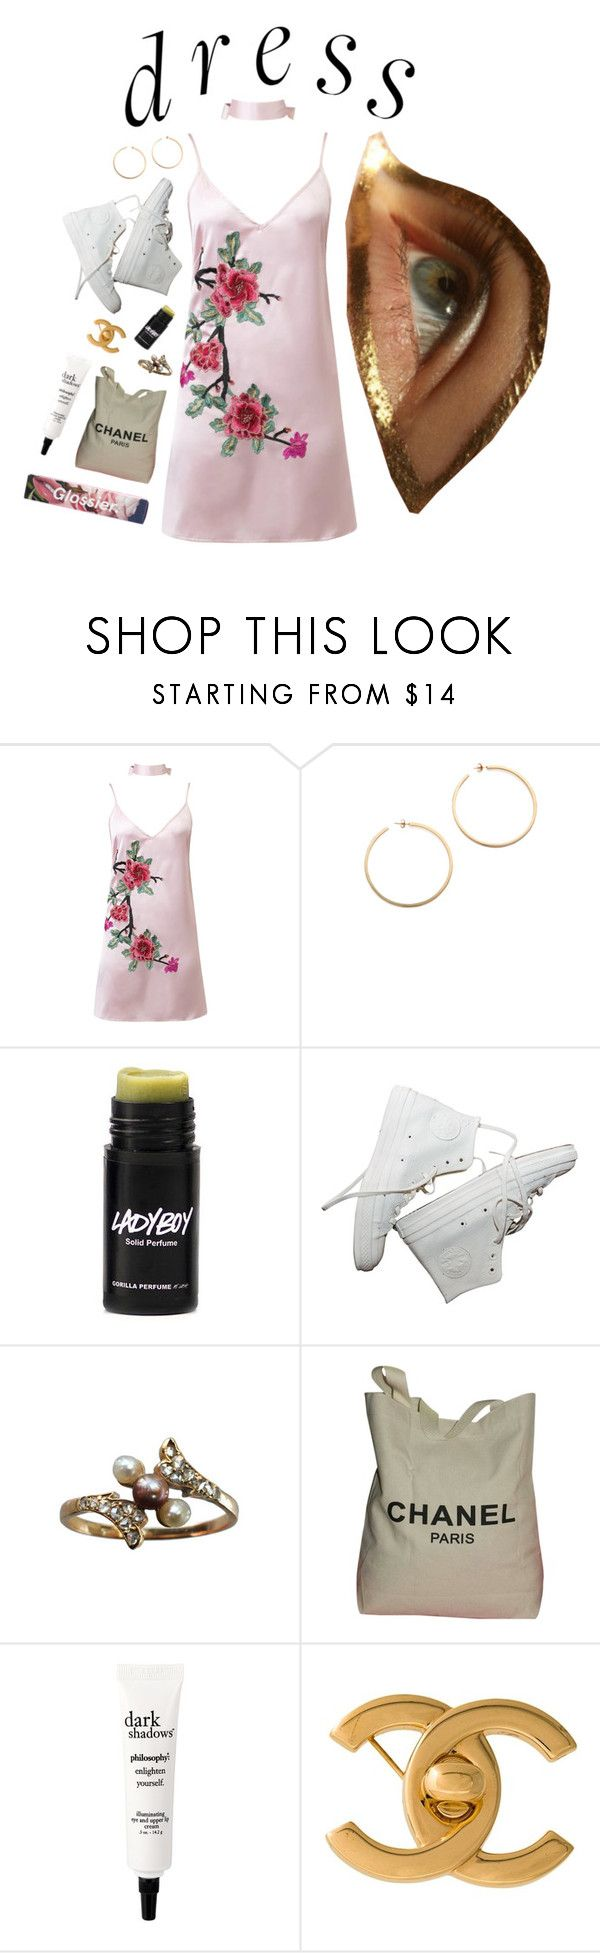 """choker dress."" by litewashdenim ❤ liked on Polyvore featuring WithChic, Kristen Elspeth, Ladyboy, Chanel and philosophy"